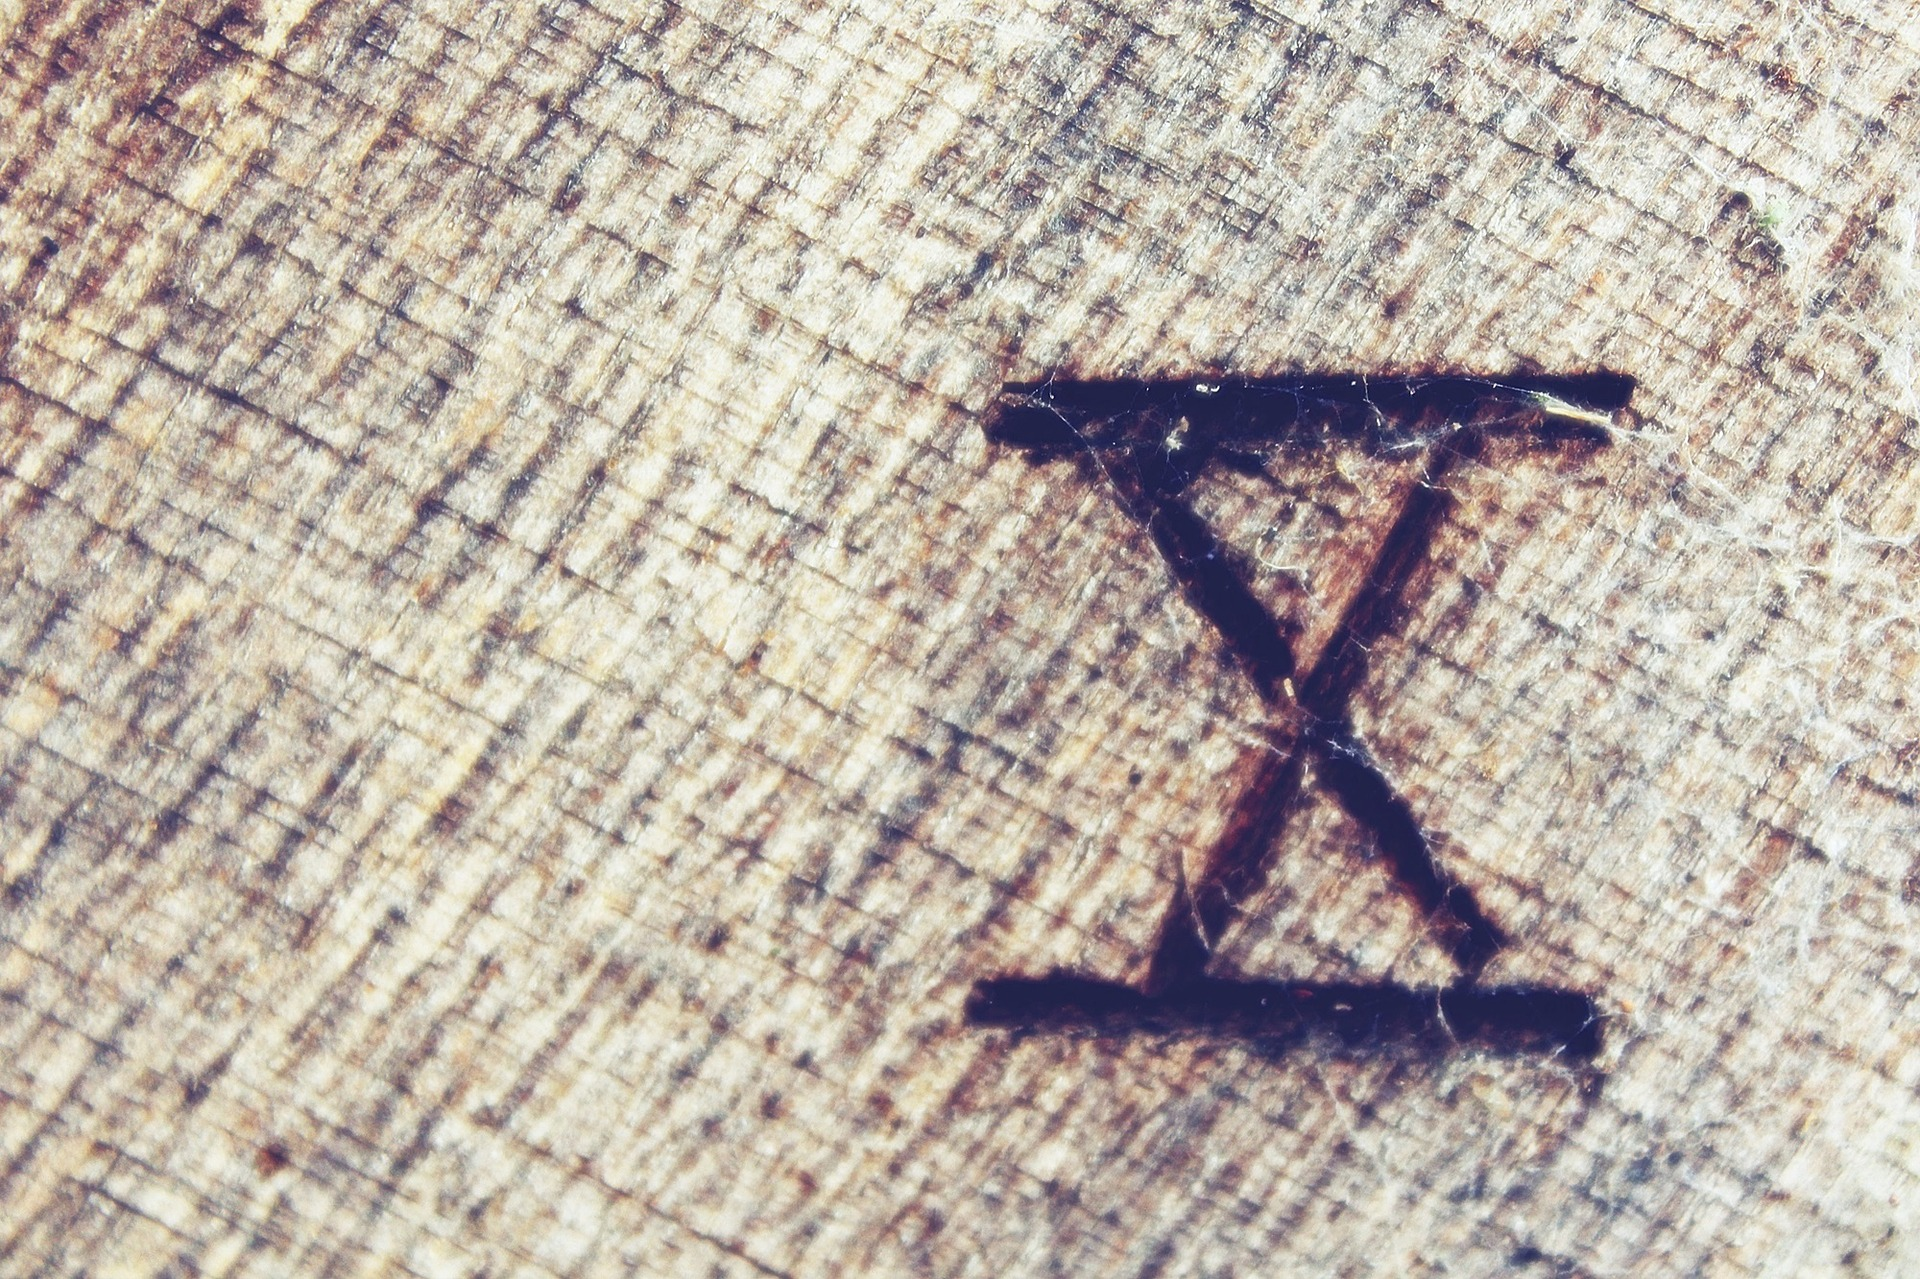 The number ten in Roman numerals